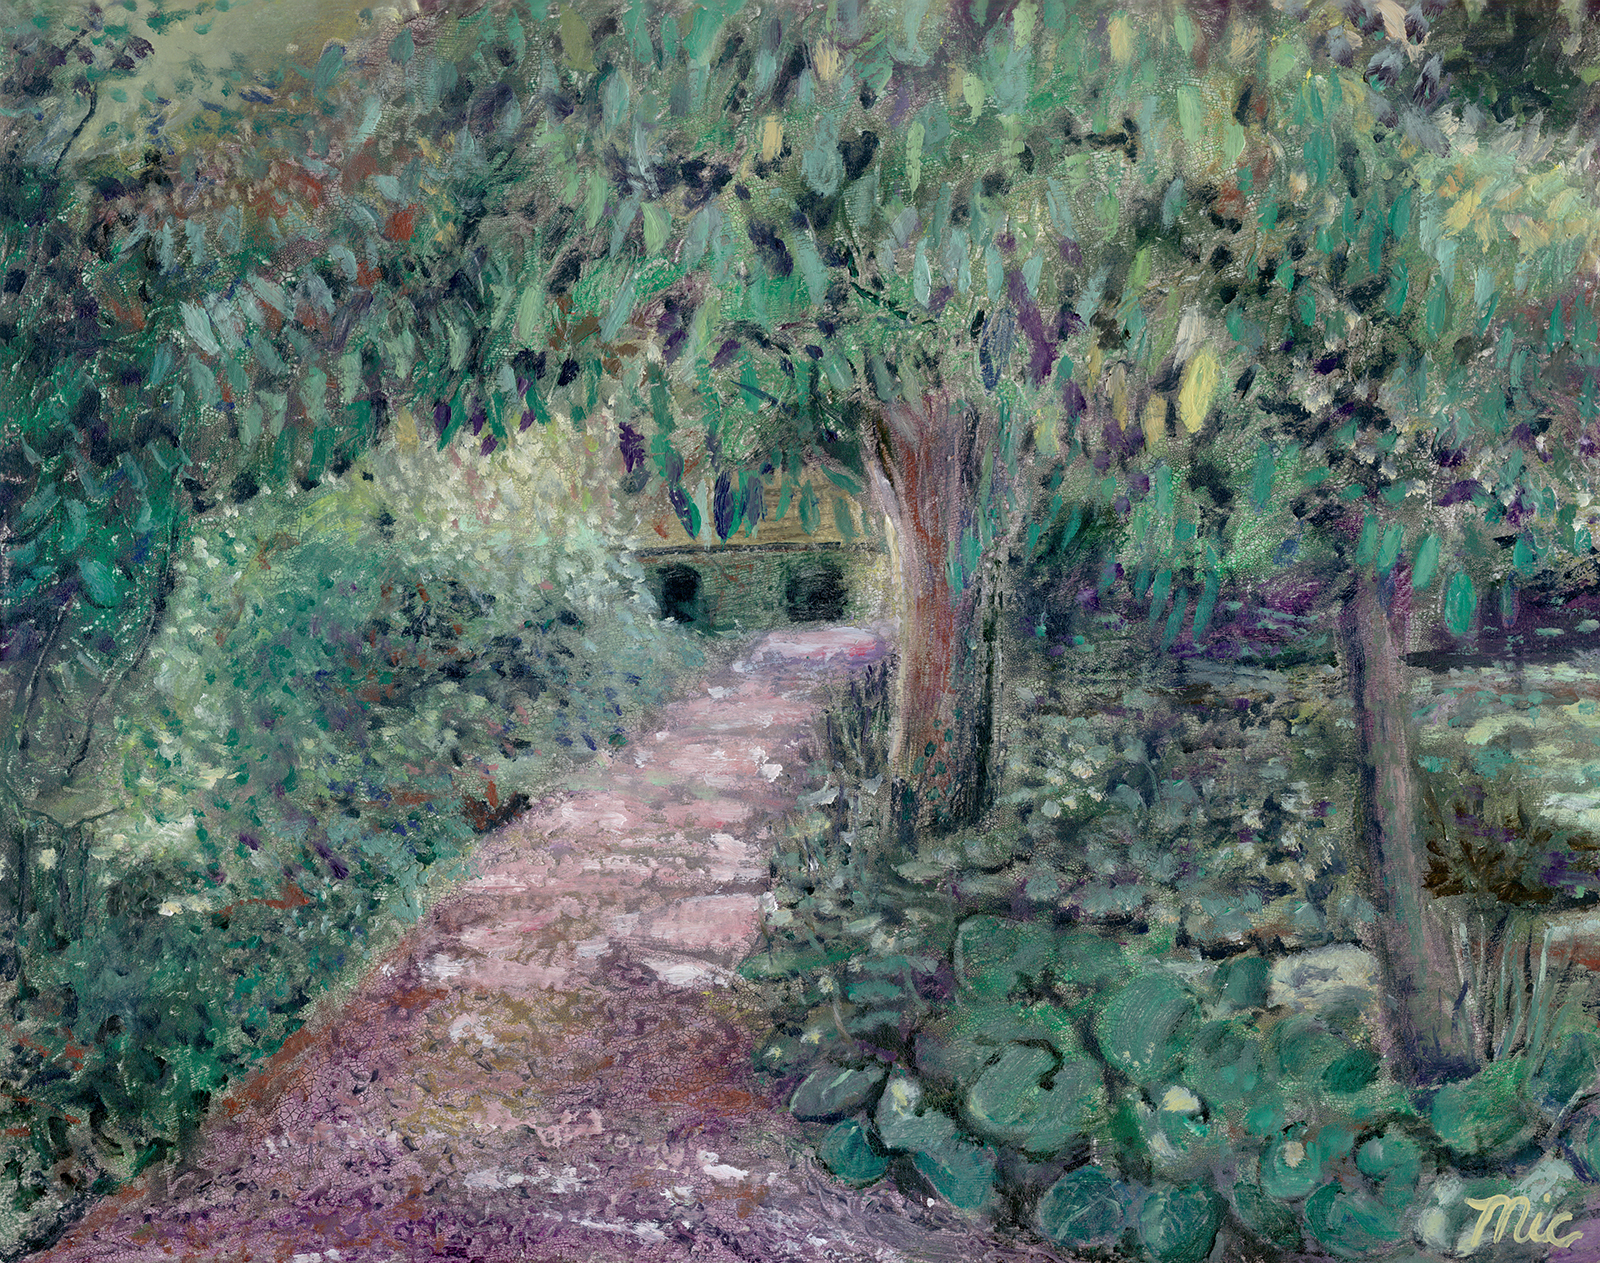 """Botanical Gardens"" Perugia, Italy - Oil on Italian panel, Private Collection Butterworth Hospital, Grand Rapids, Michigan.Giclee Limited Edition and canvas prints are available. Please visit the prints gallery."